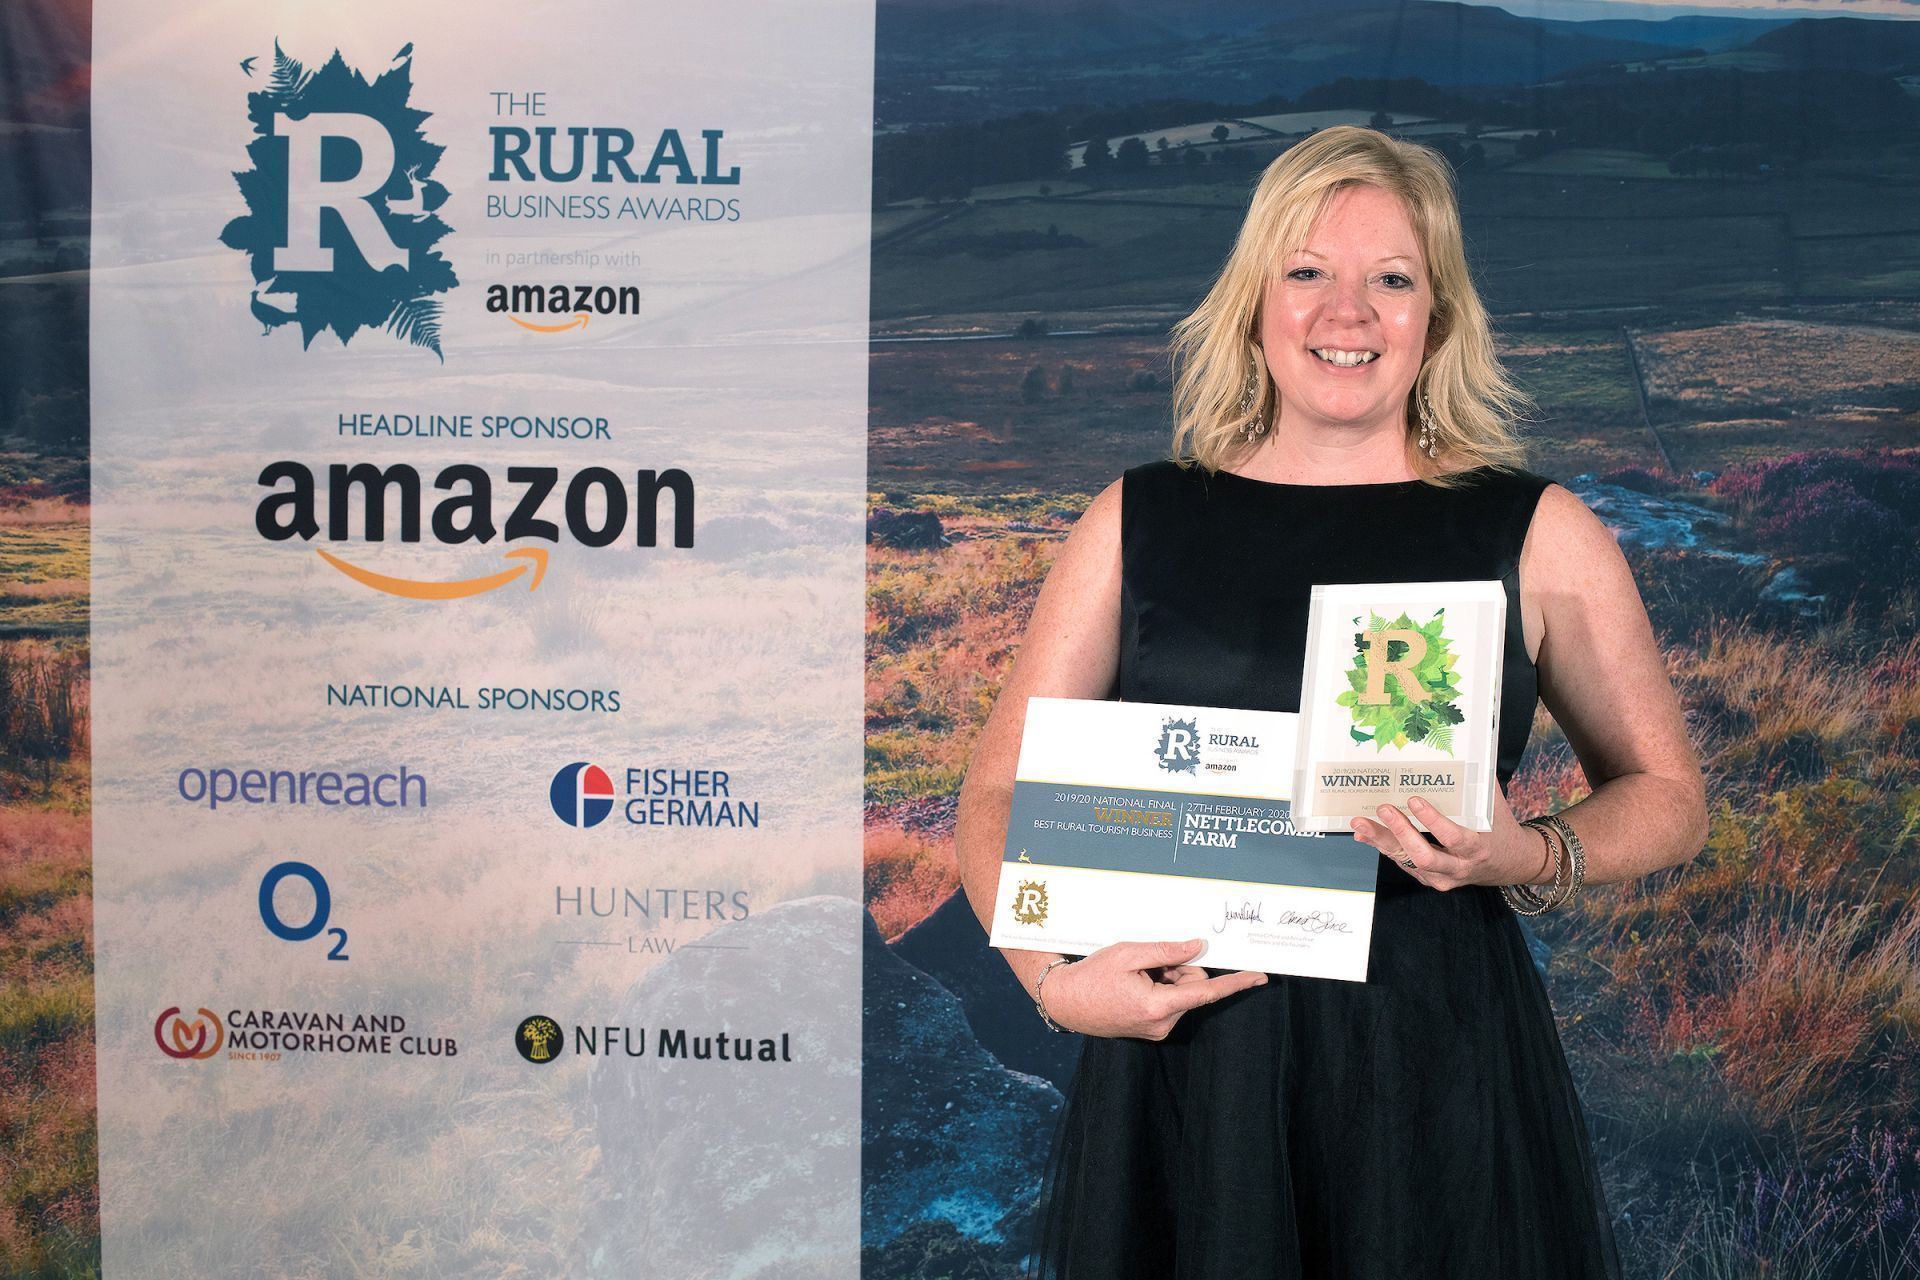 Best Rural Tourism Business 2019-2020